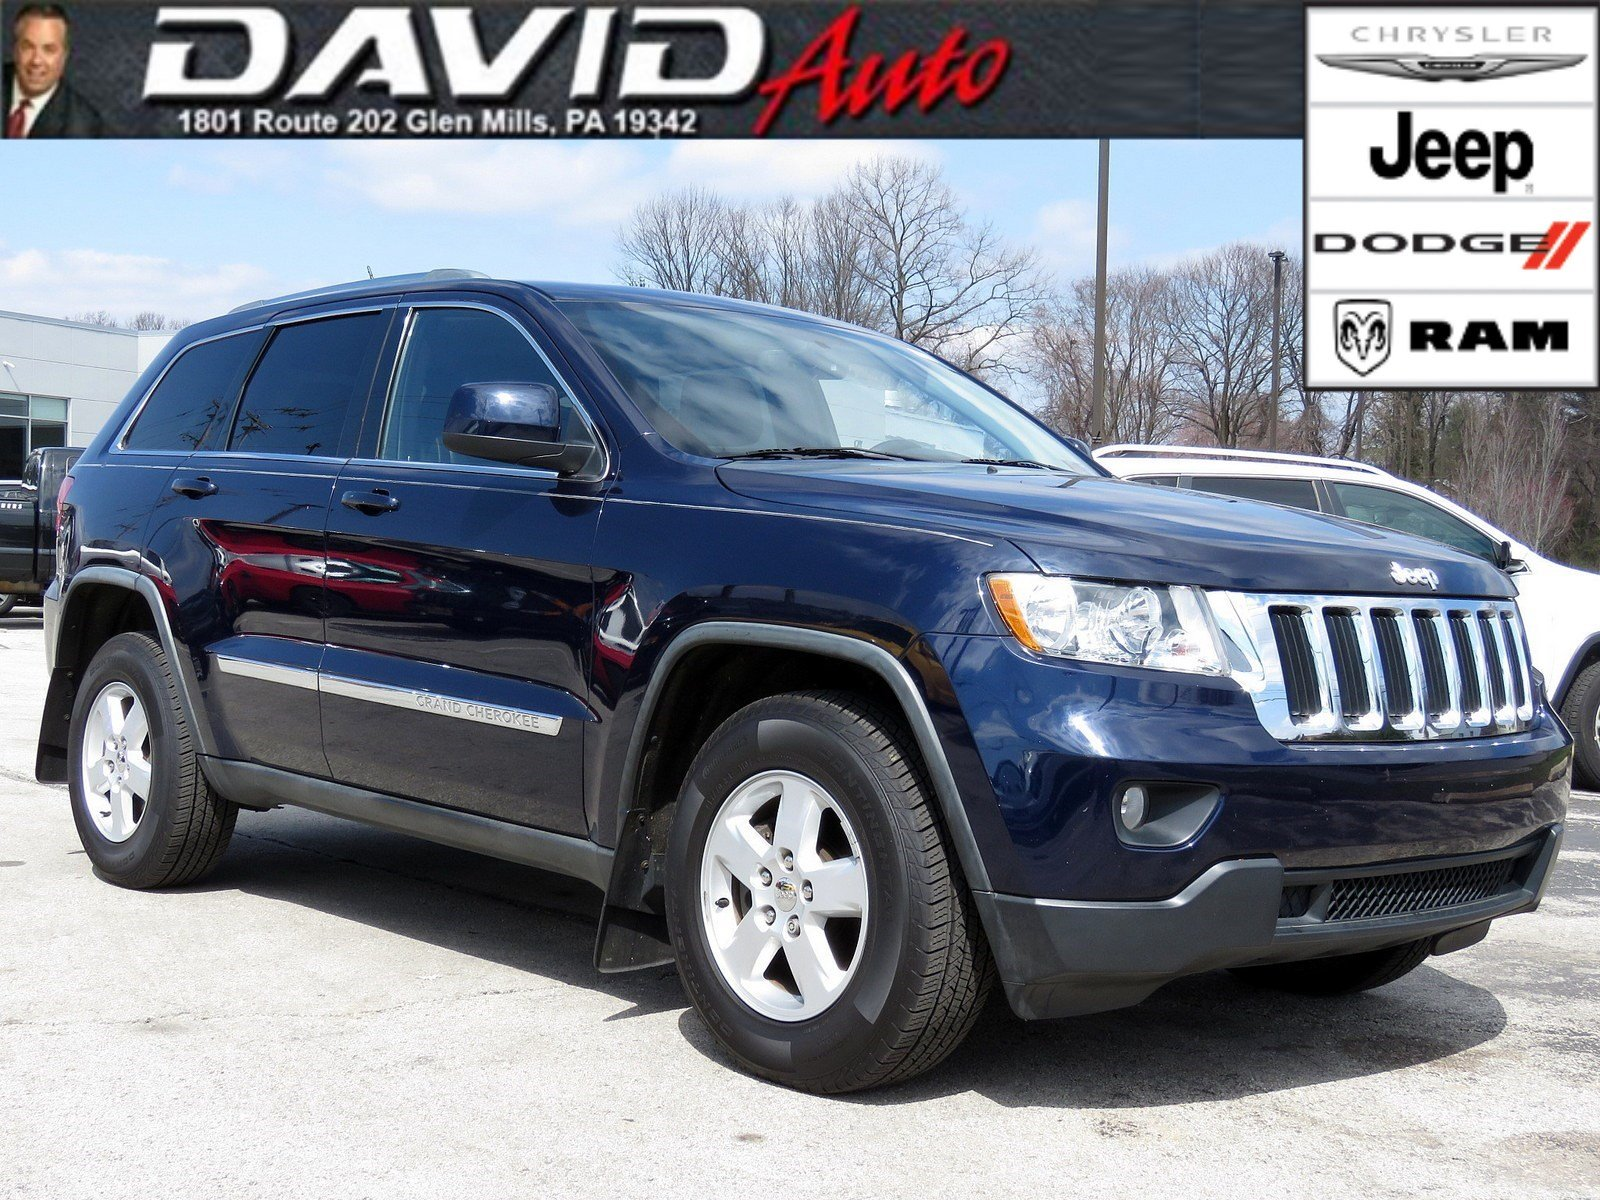 Pre Owned 2012 Jeep Grand Cherokee Laredo Sport Utility in Glen